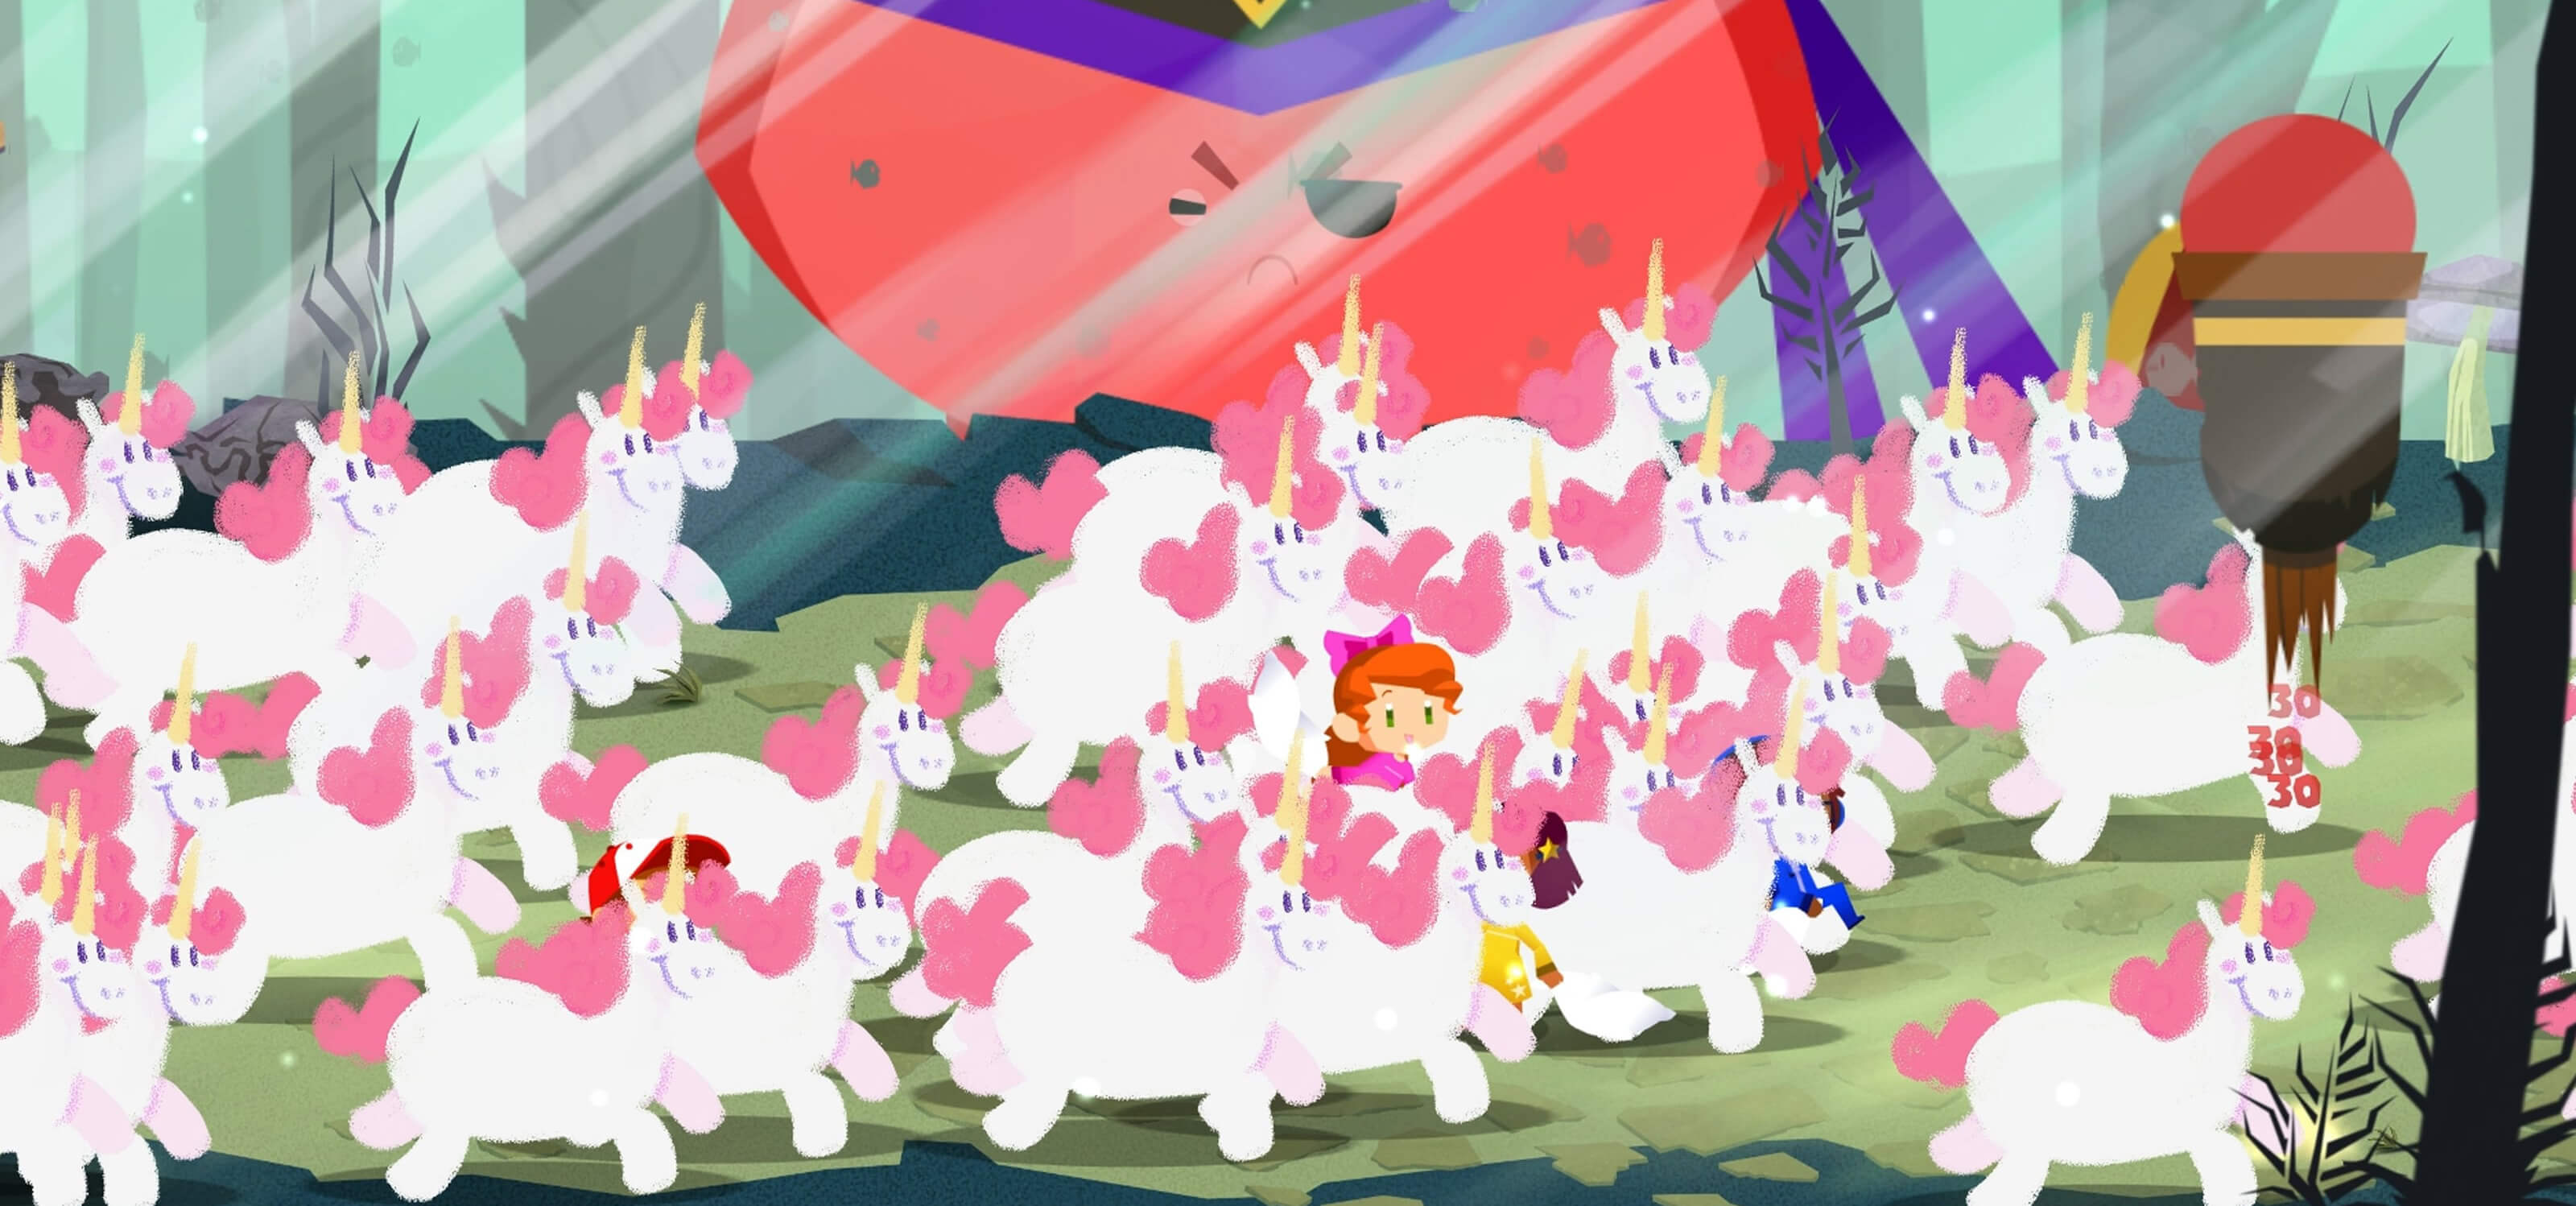 Screenshot from DigiPen student game Book of Dreams, featuring characters among a herd of identical unicorns